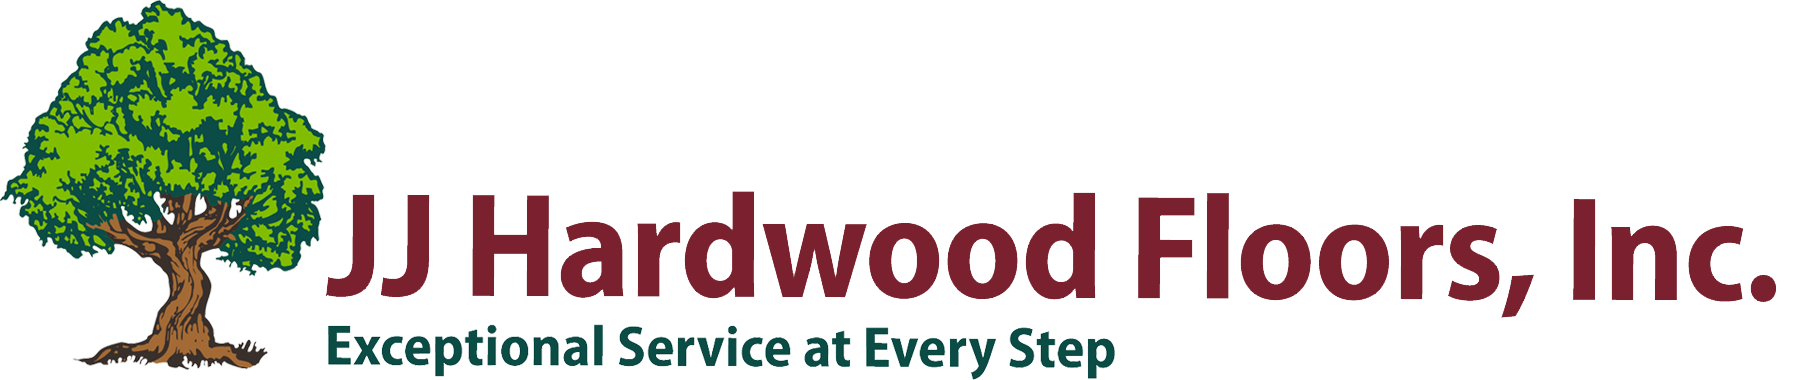 JJ Hardwood Floors